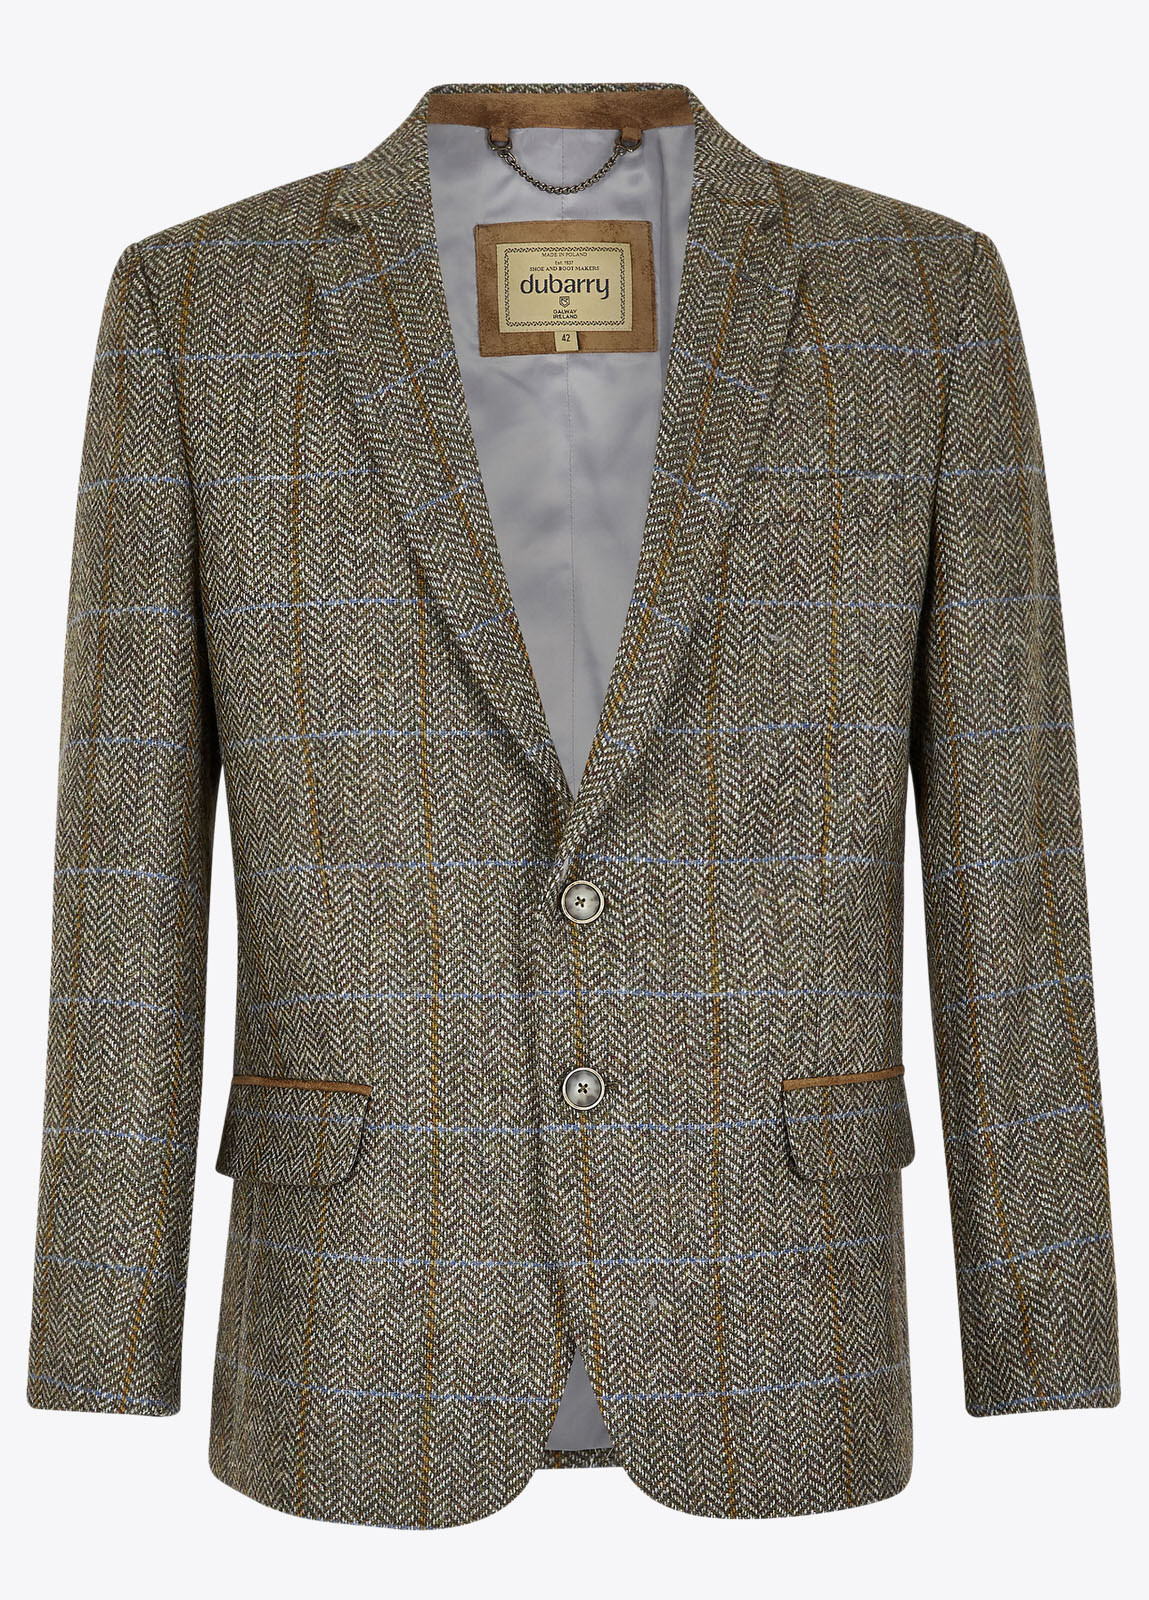 Rockville Tweed Jacket - Woodbine